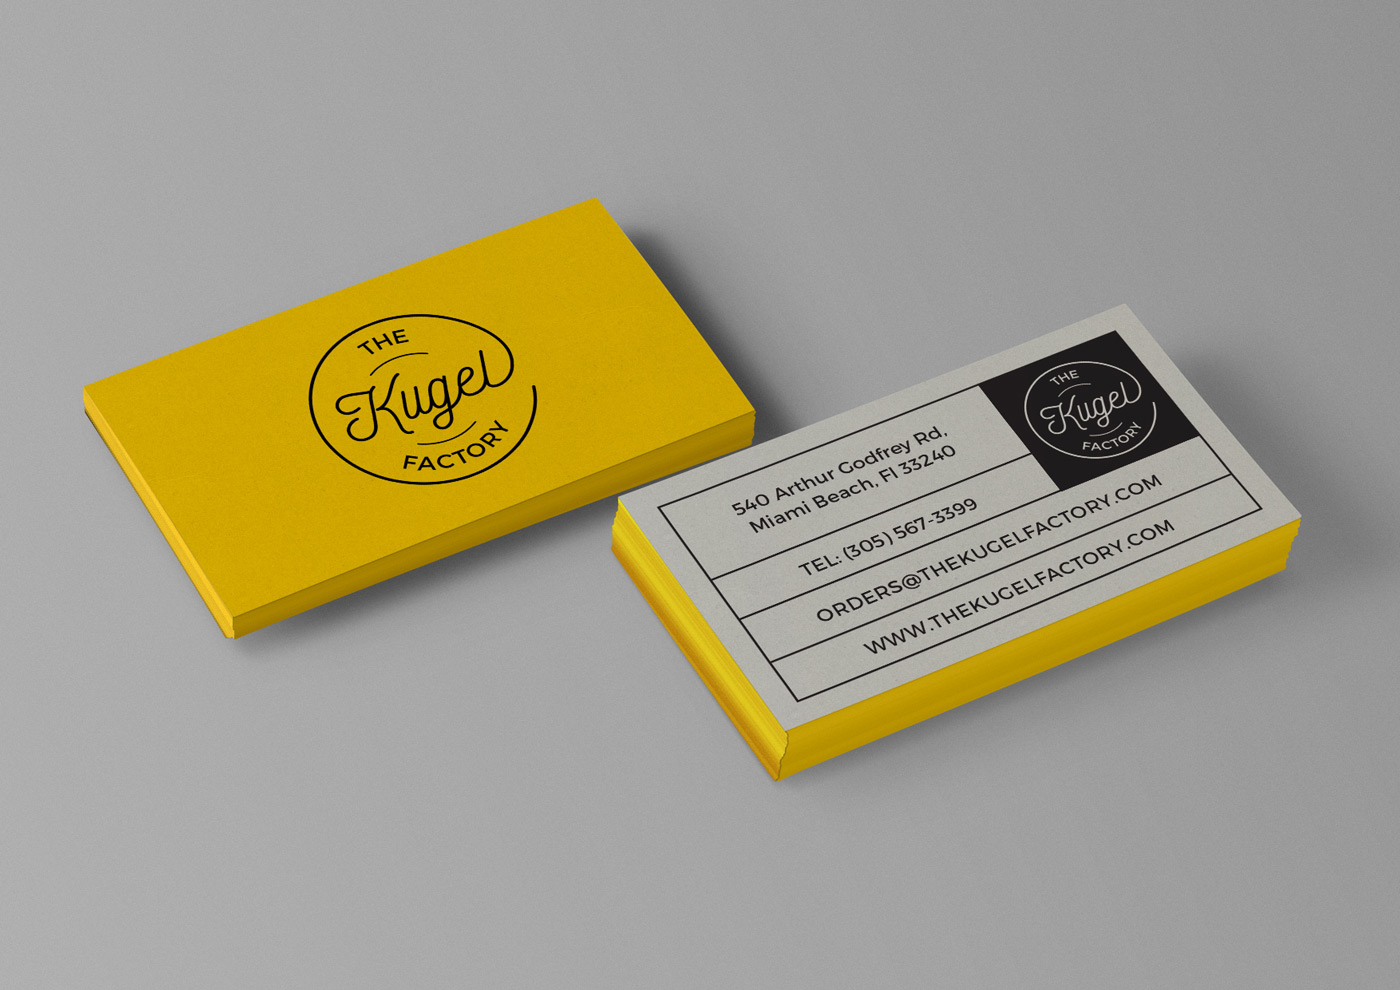 The Kugel Factory Business Card